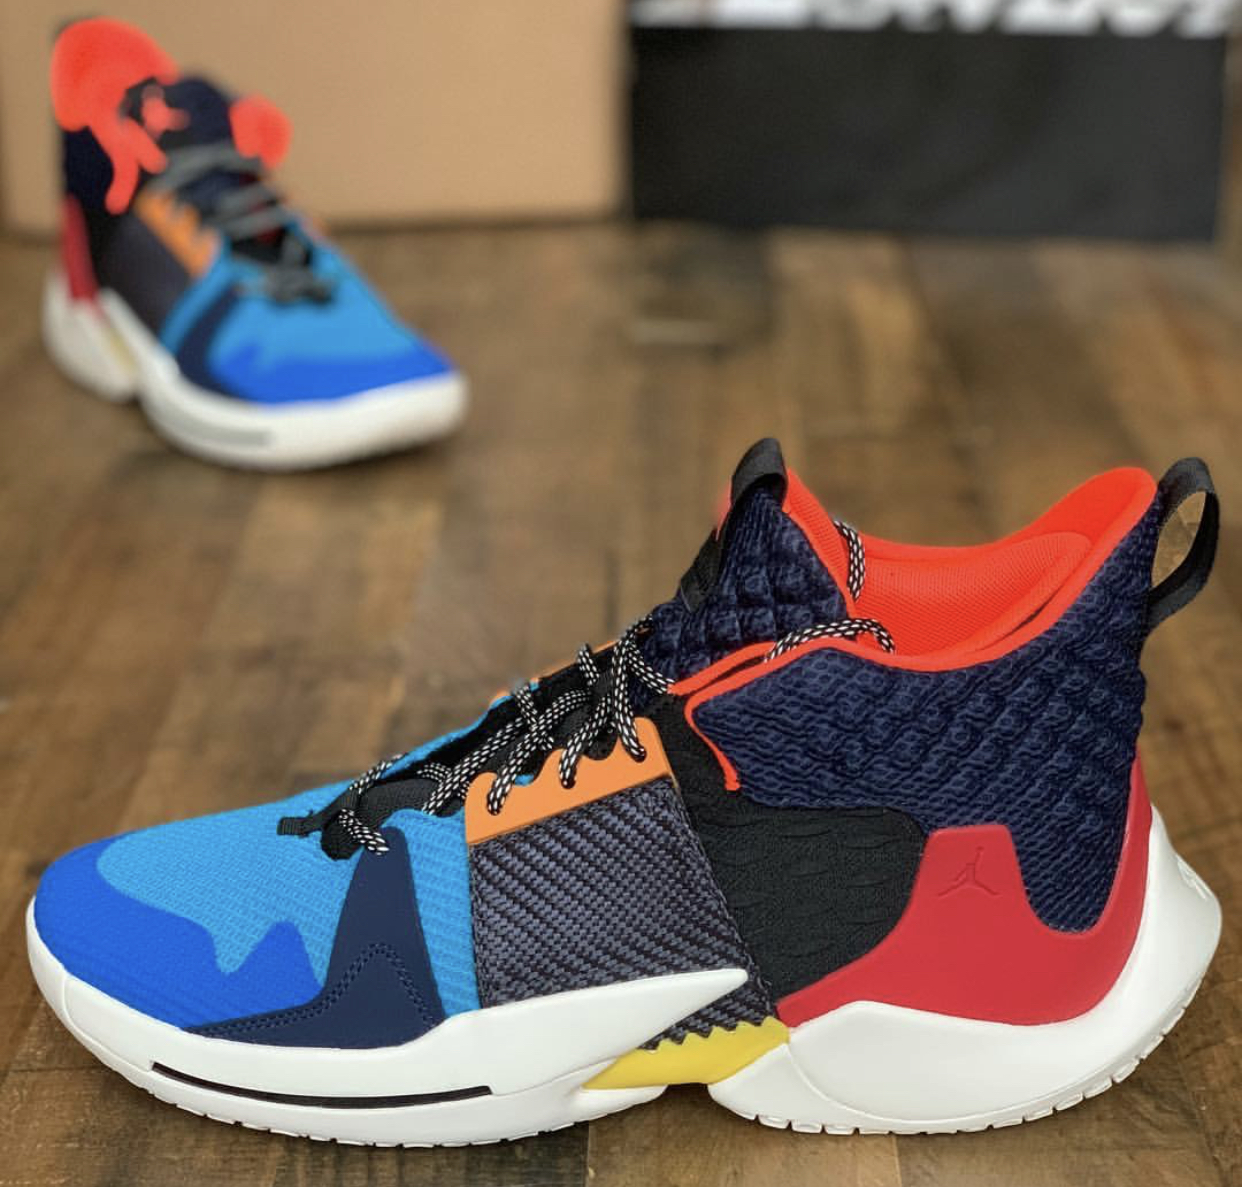 WHY NOT 2.0 sneakers